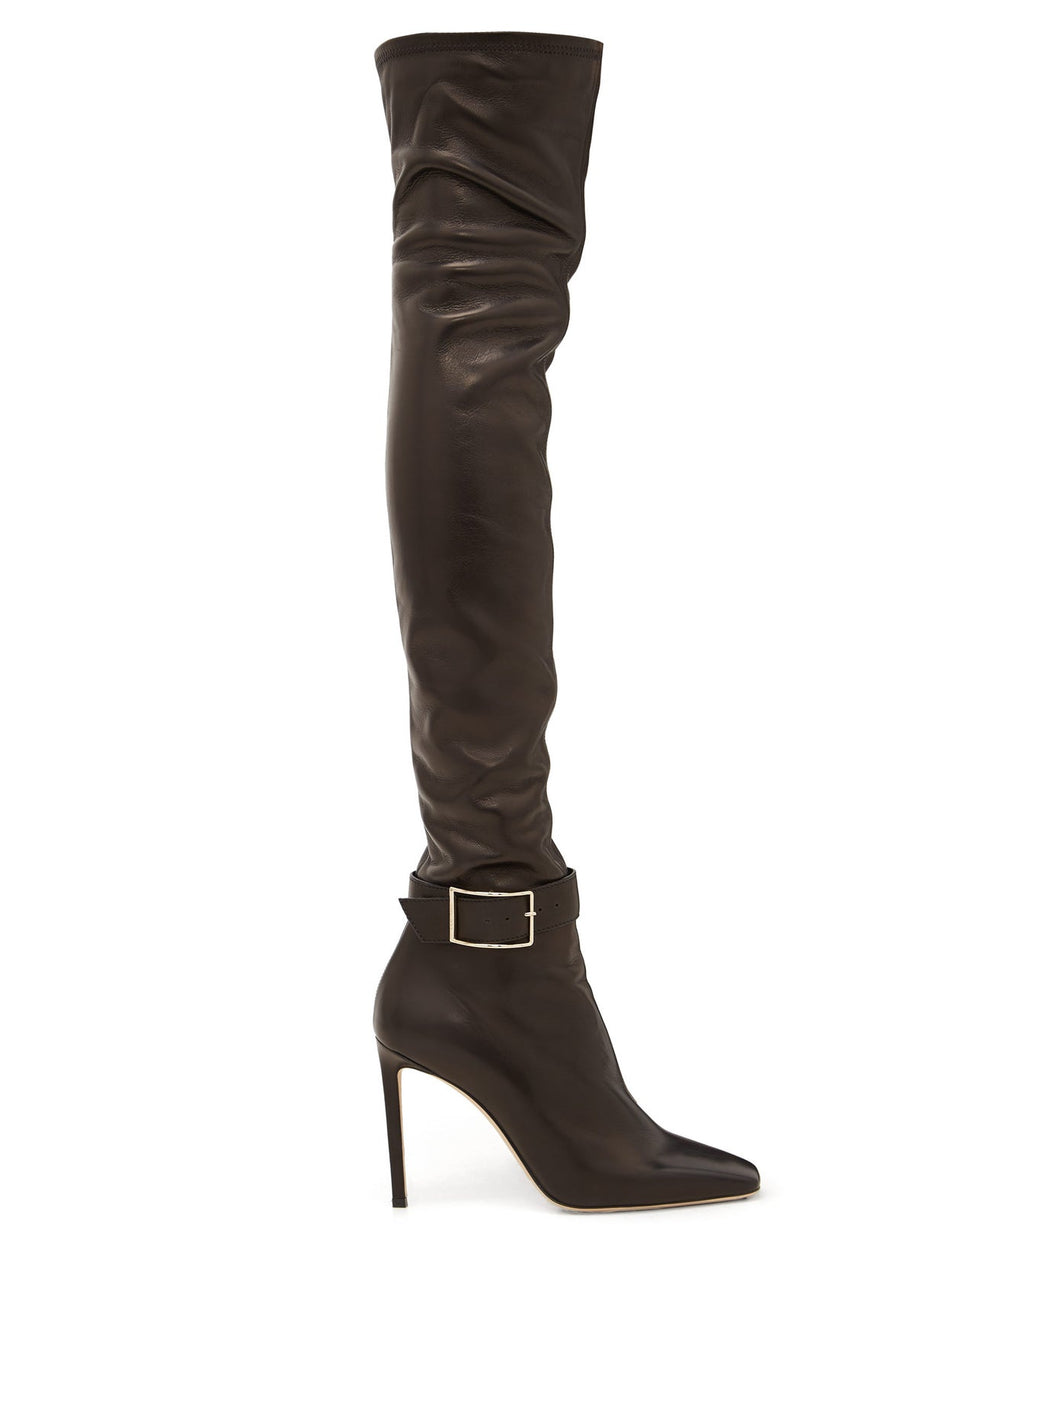 Takara 100 buckled leather over-the-knee boots